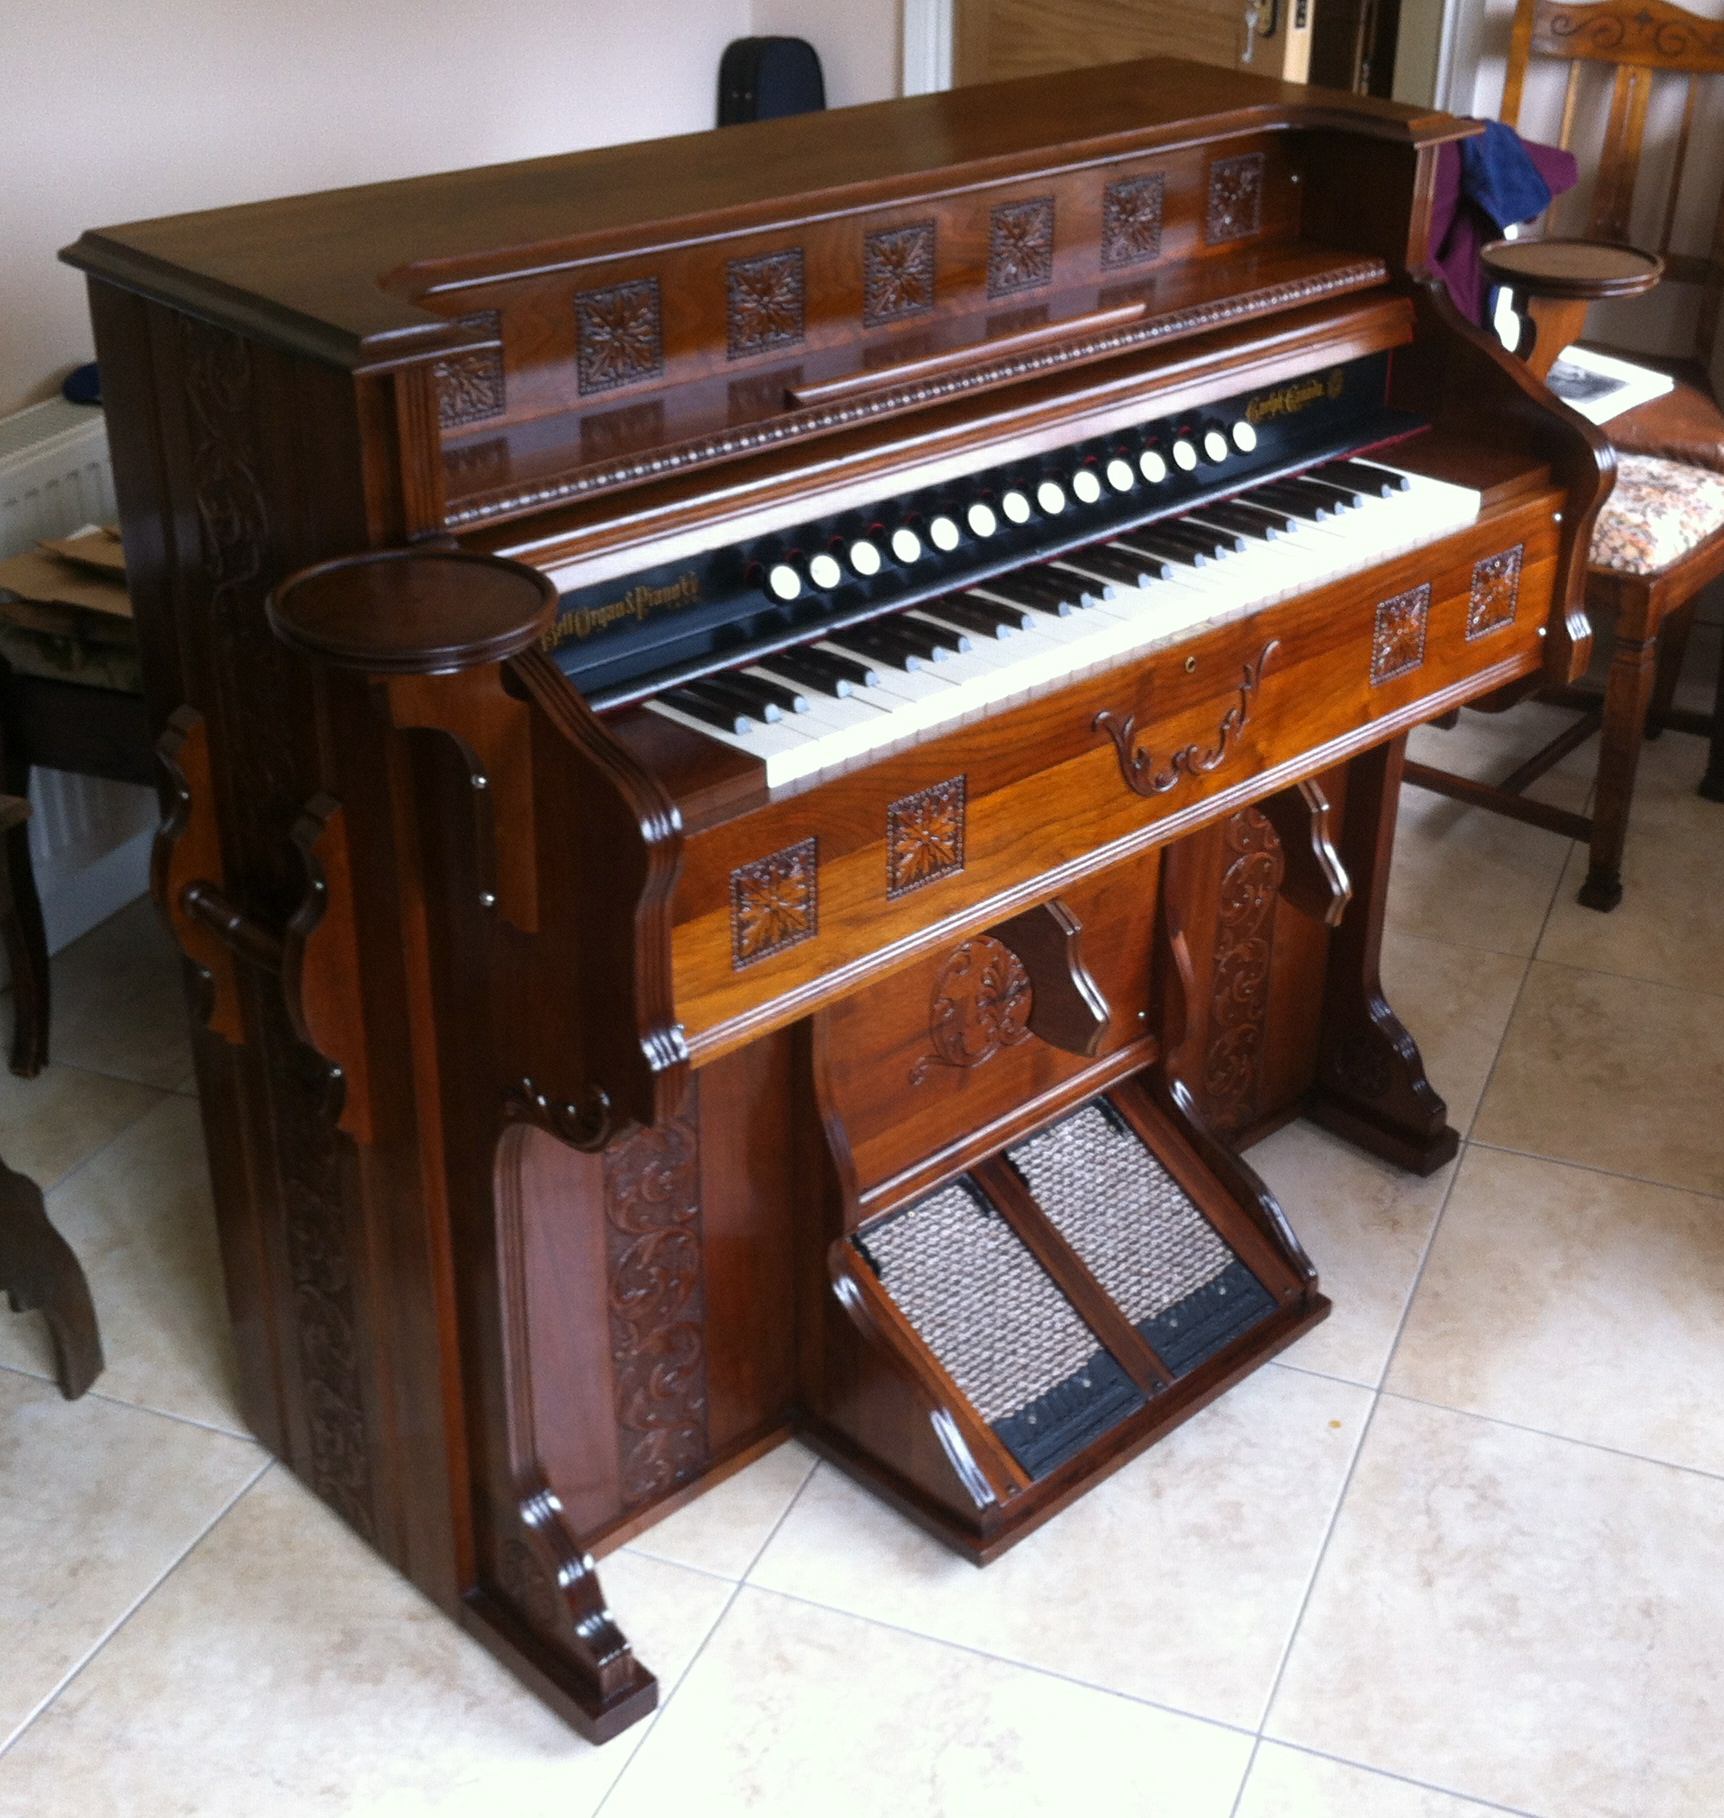 Bell of Guelph, Canada, 1897 Reed Organ Restored 2013-2014